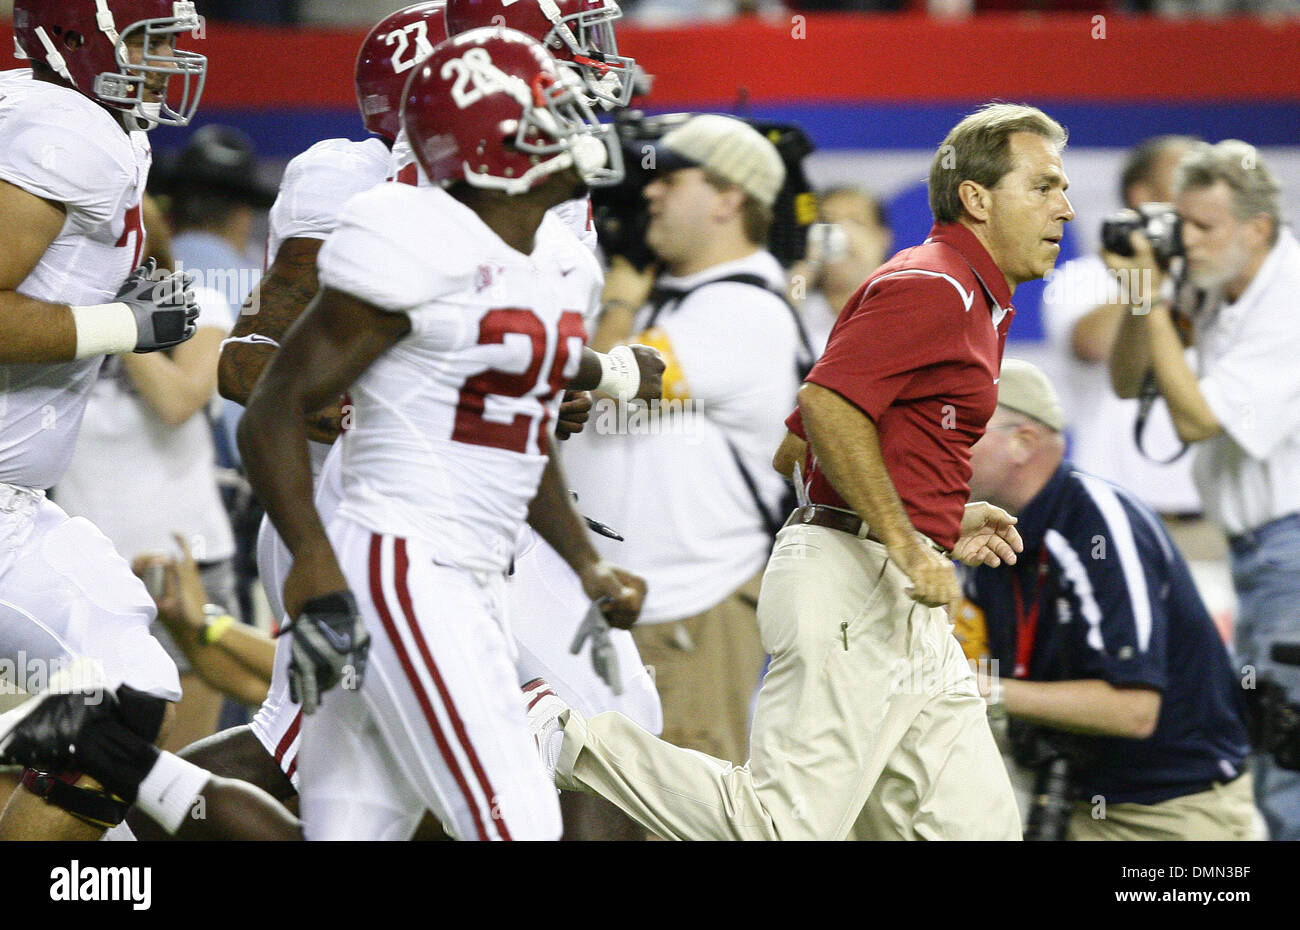 Sep 05, 2009 - Atlanta, Georgia, USA - NCAA Football - Alabama Head Coach NICK SABAN runs out onto the field with his players before their season opener against Virginia Tech in the Georgia Dome. (Credit Image: © Josh D. Weiss/ZUMA Press) - Stock Image